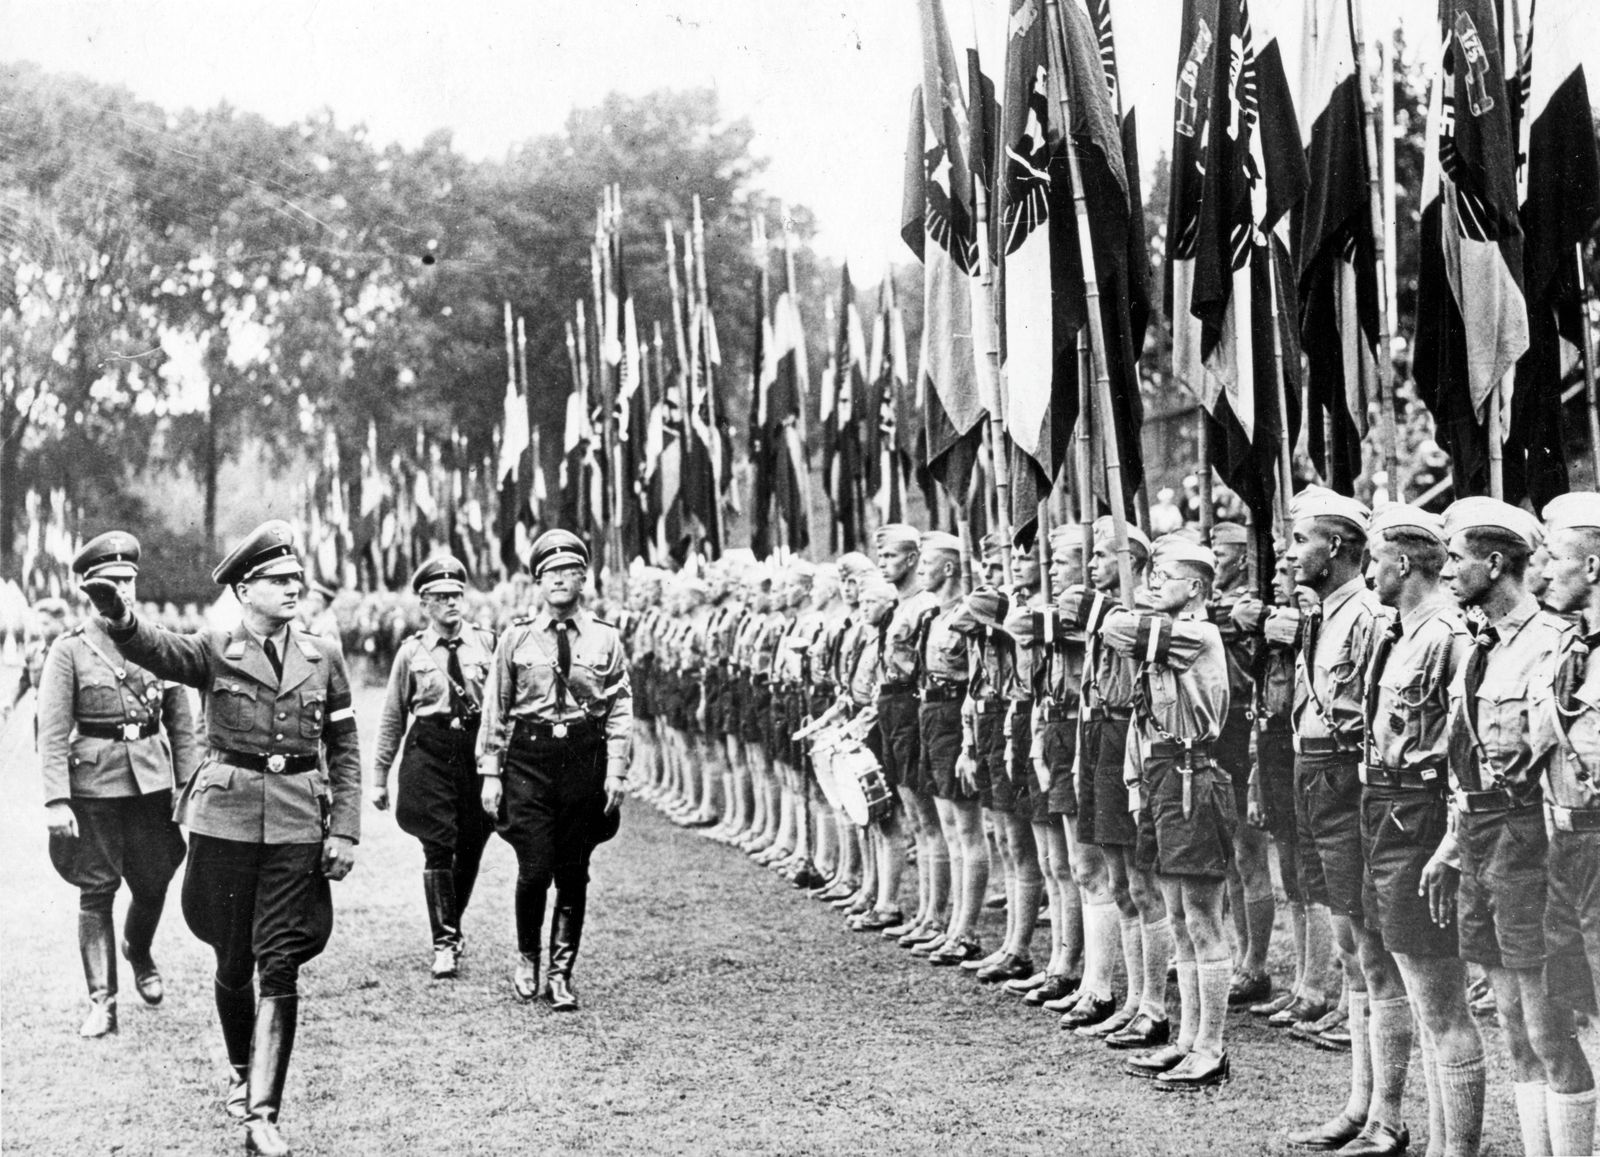 Hilter Youth Flag Review